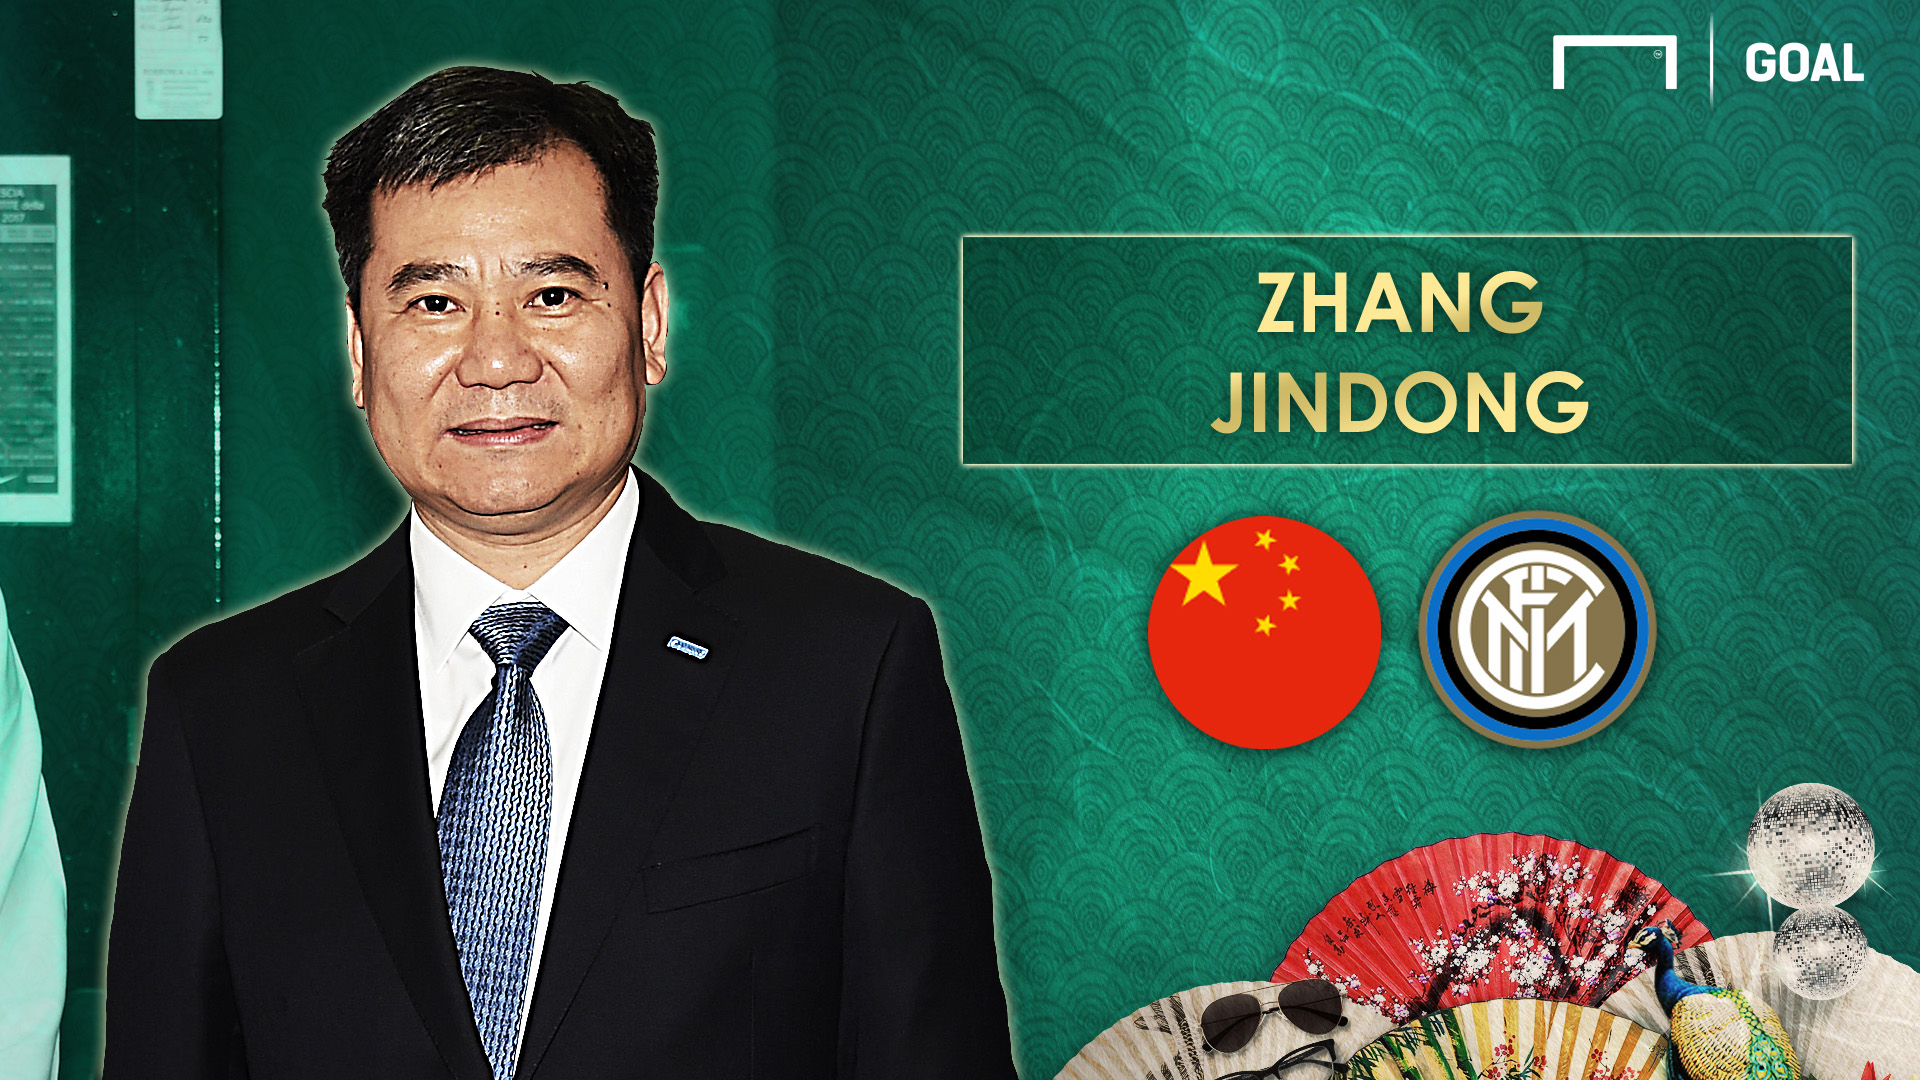 Zhang Jindong 11 Crazy Rich Asians in Football